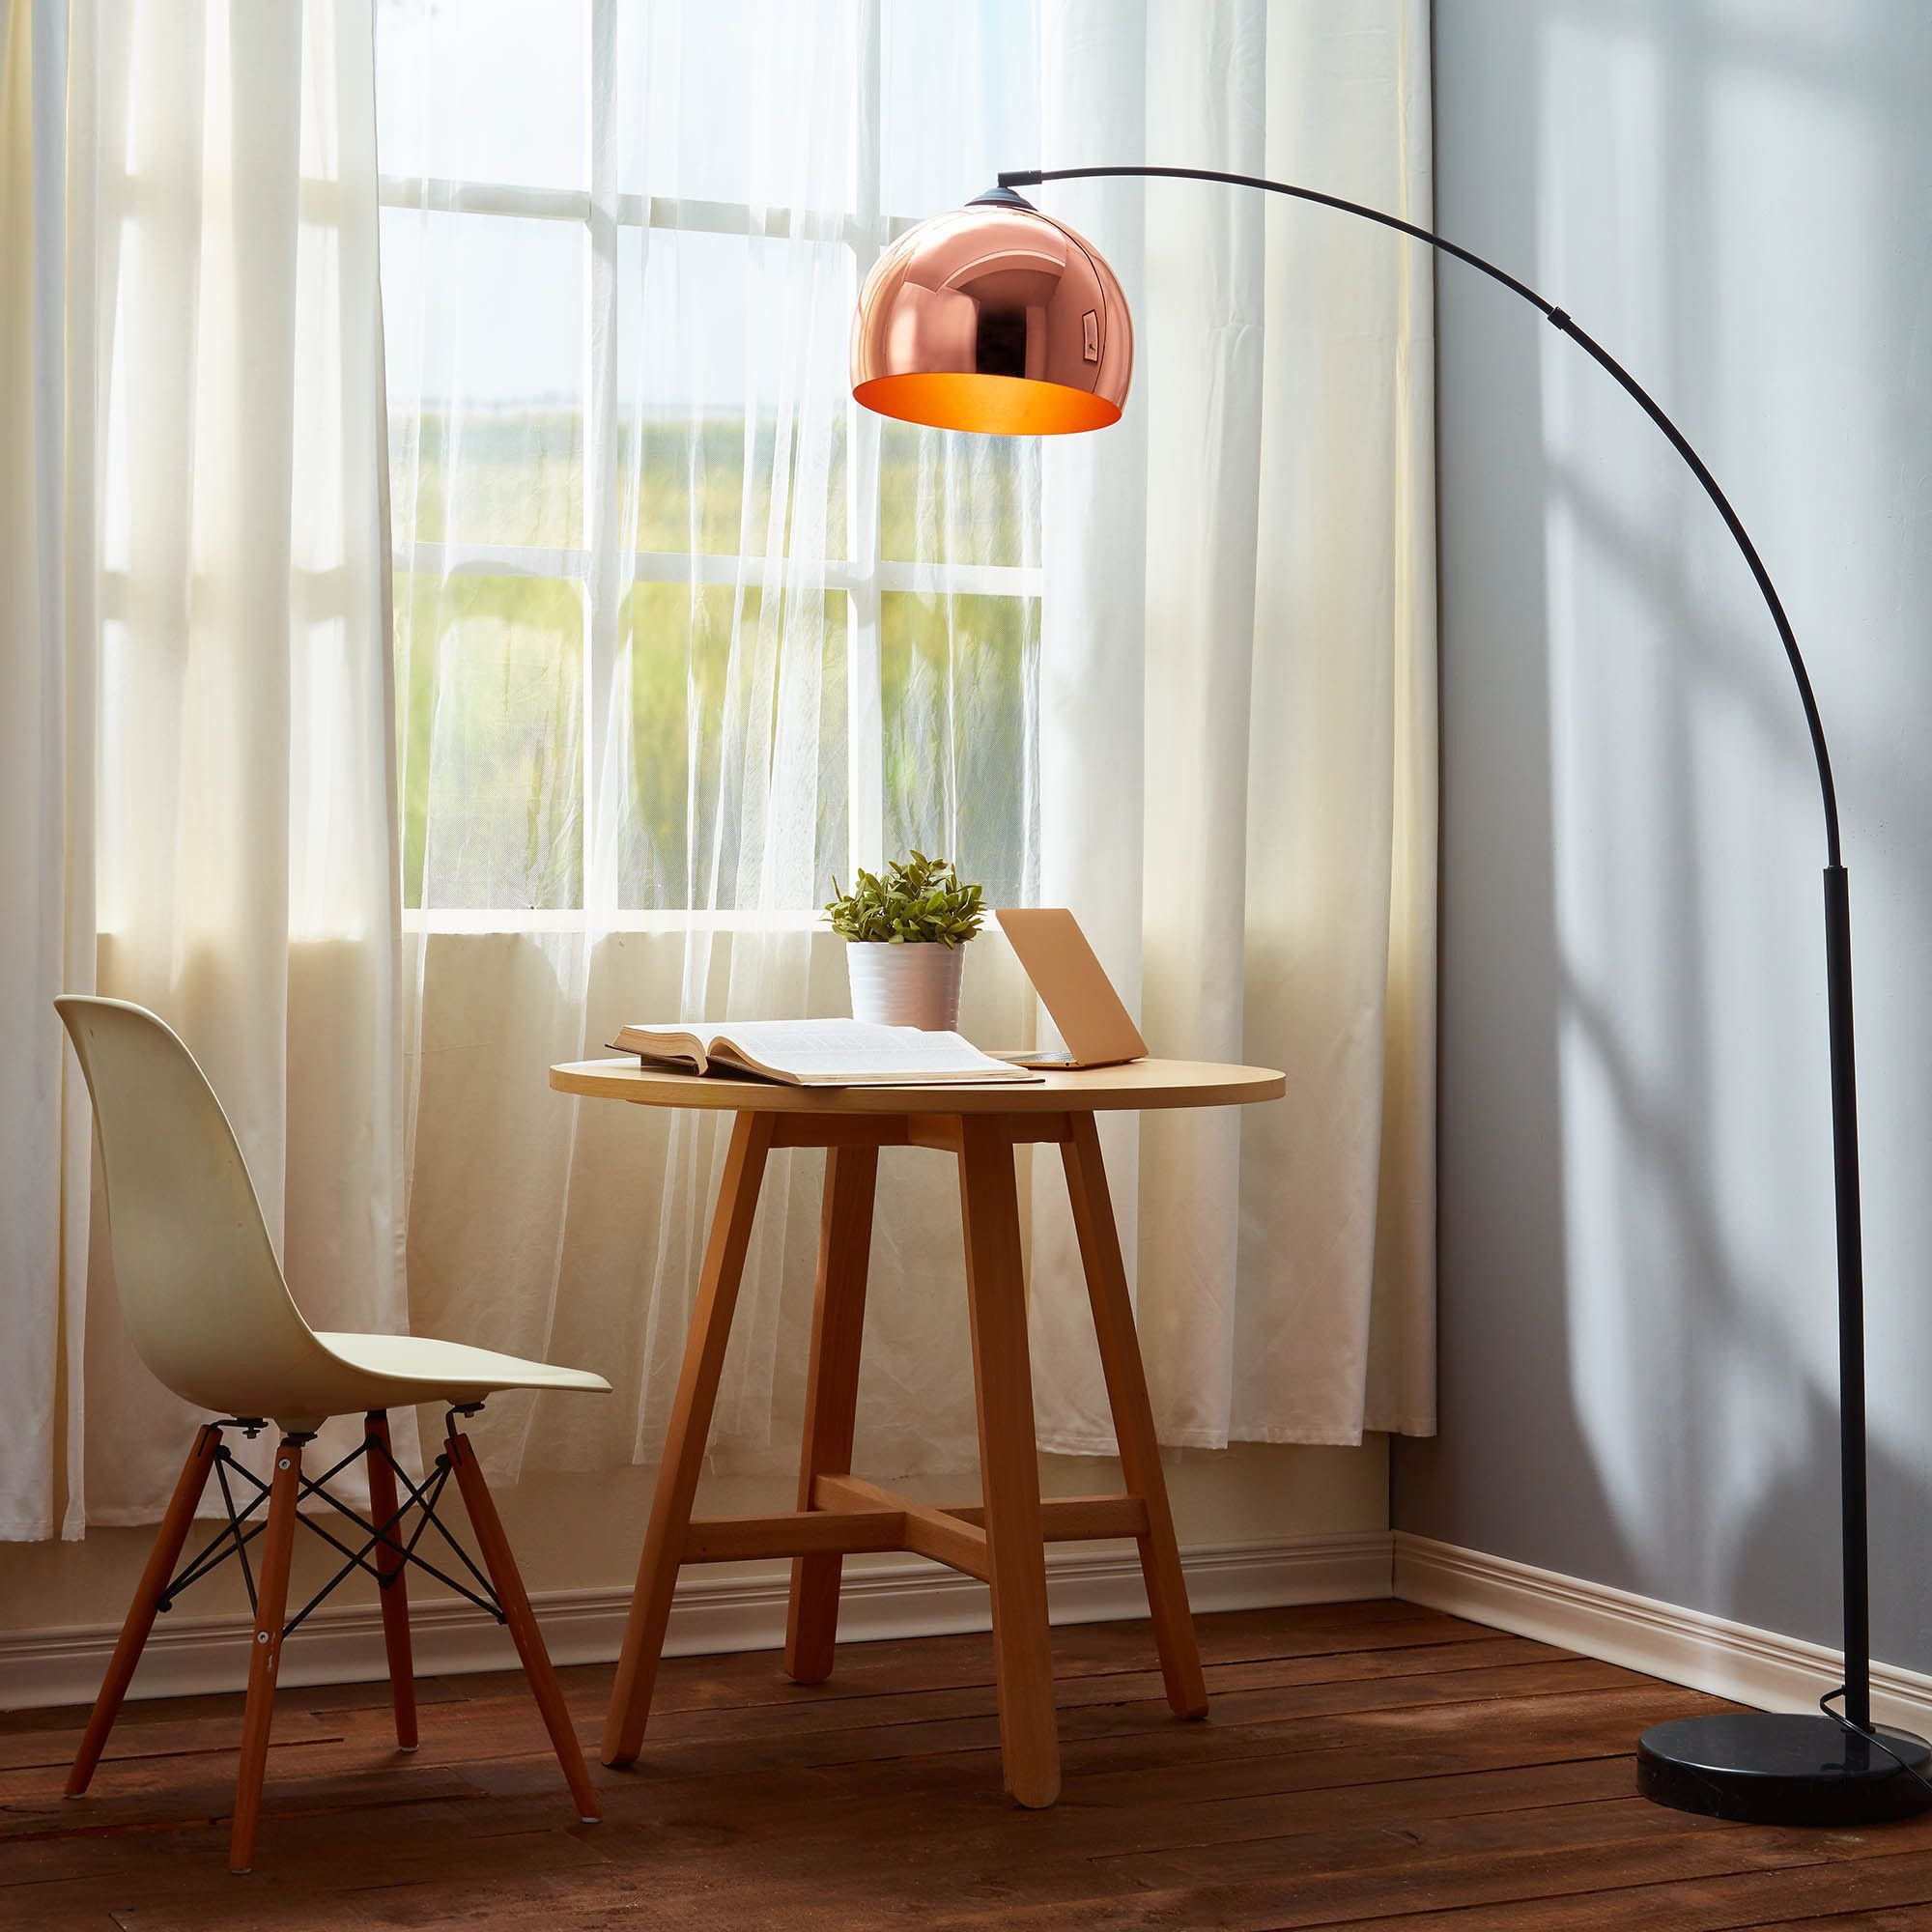 Teamson Arquer Arc Floor Lamp with Copper Shade and Black Marble ...